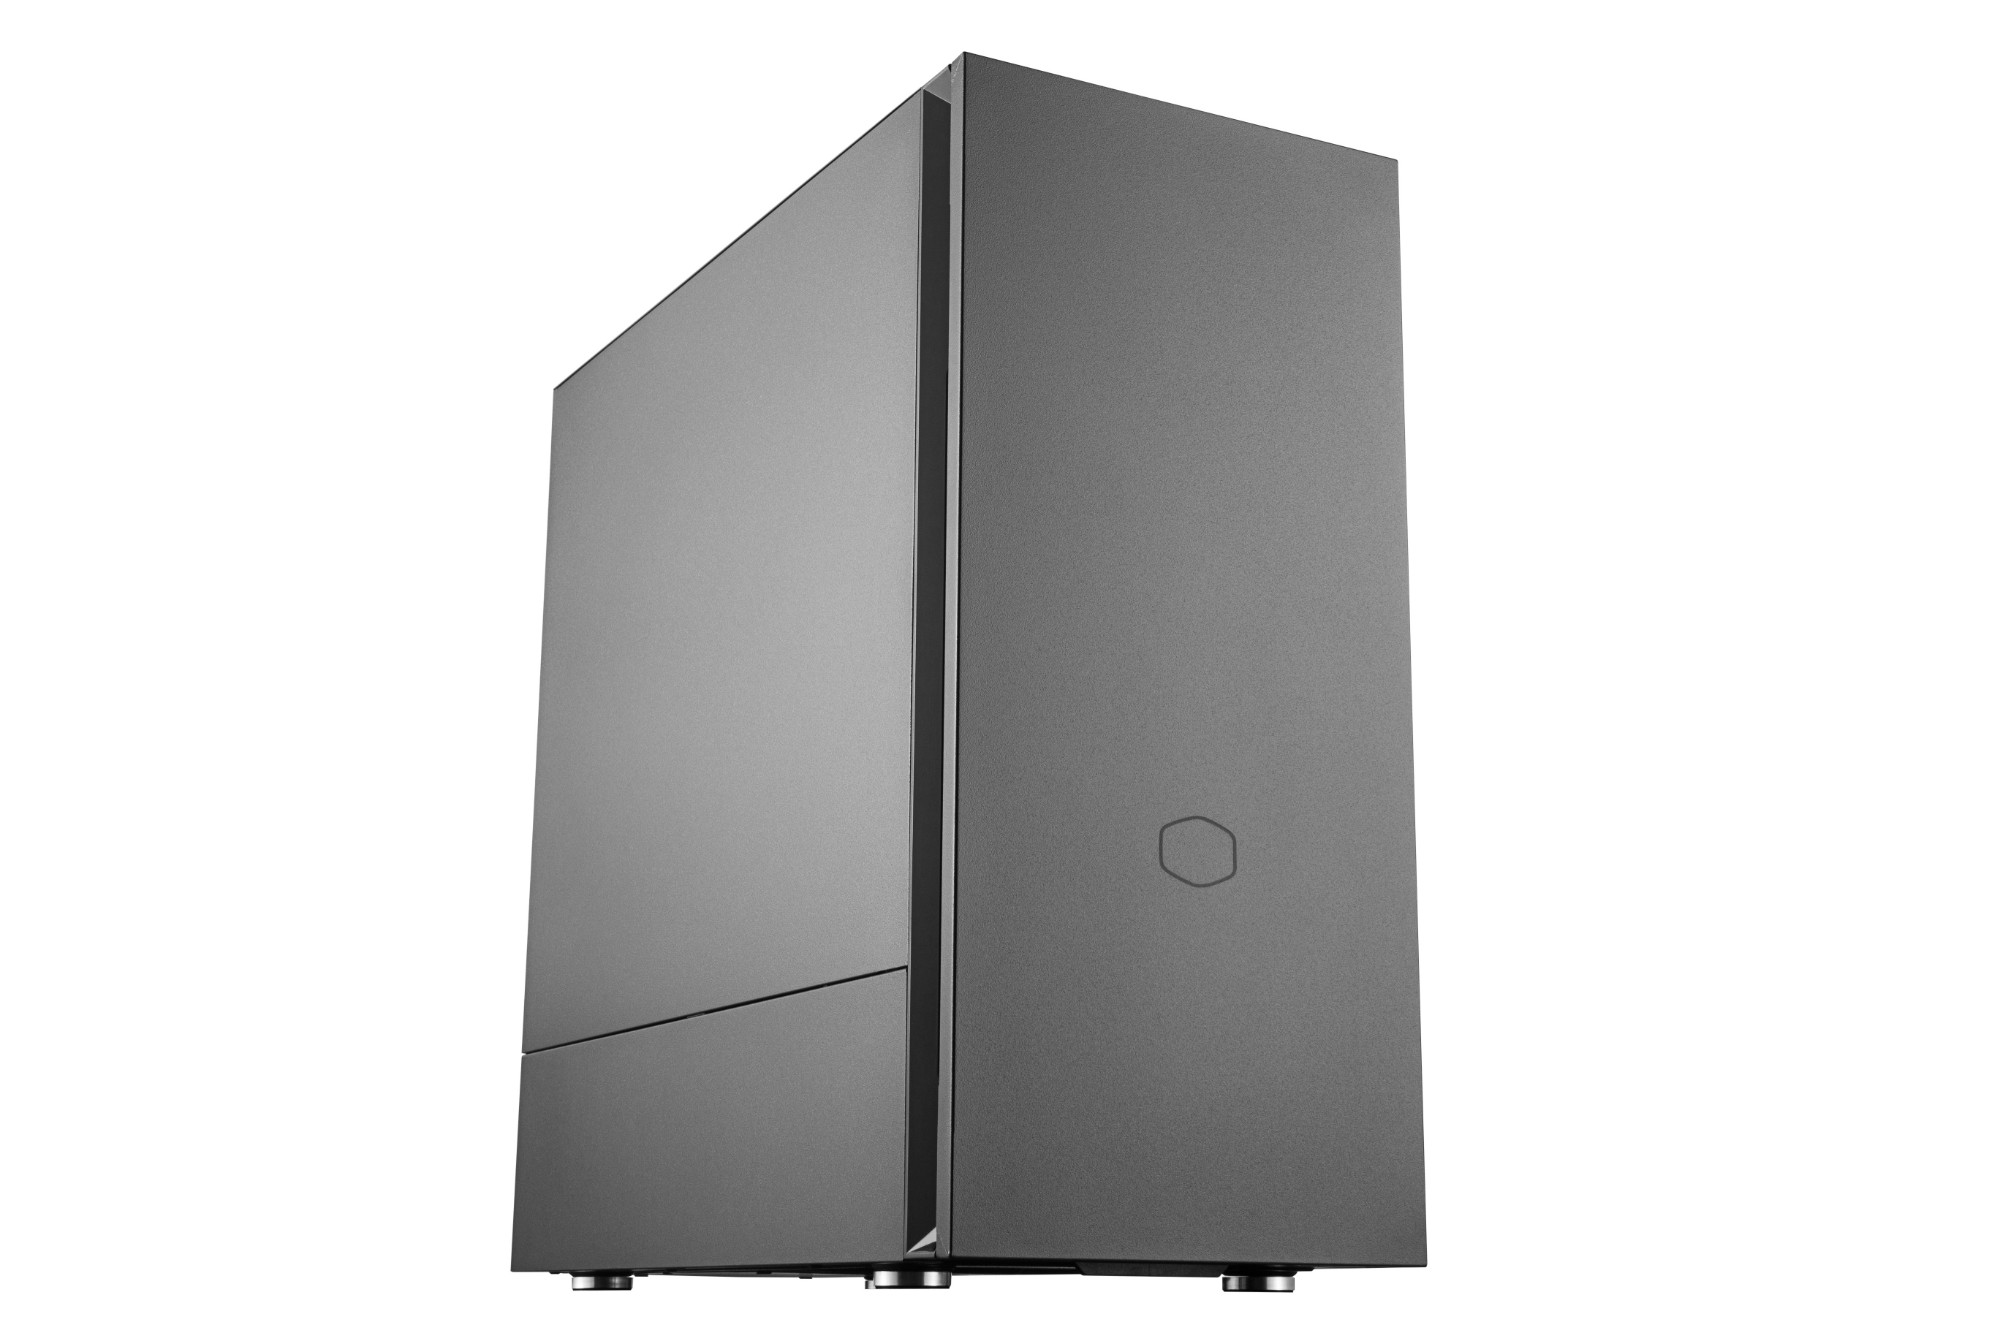 COOLER MASTER SILENCIO S600 MIDI-TOWER BLACK